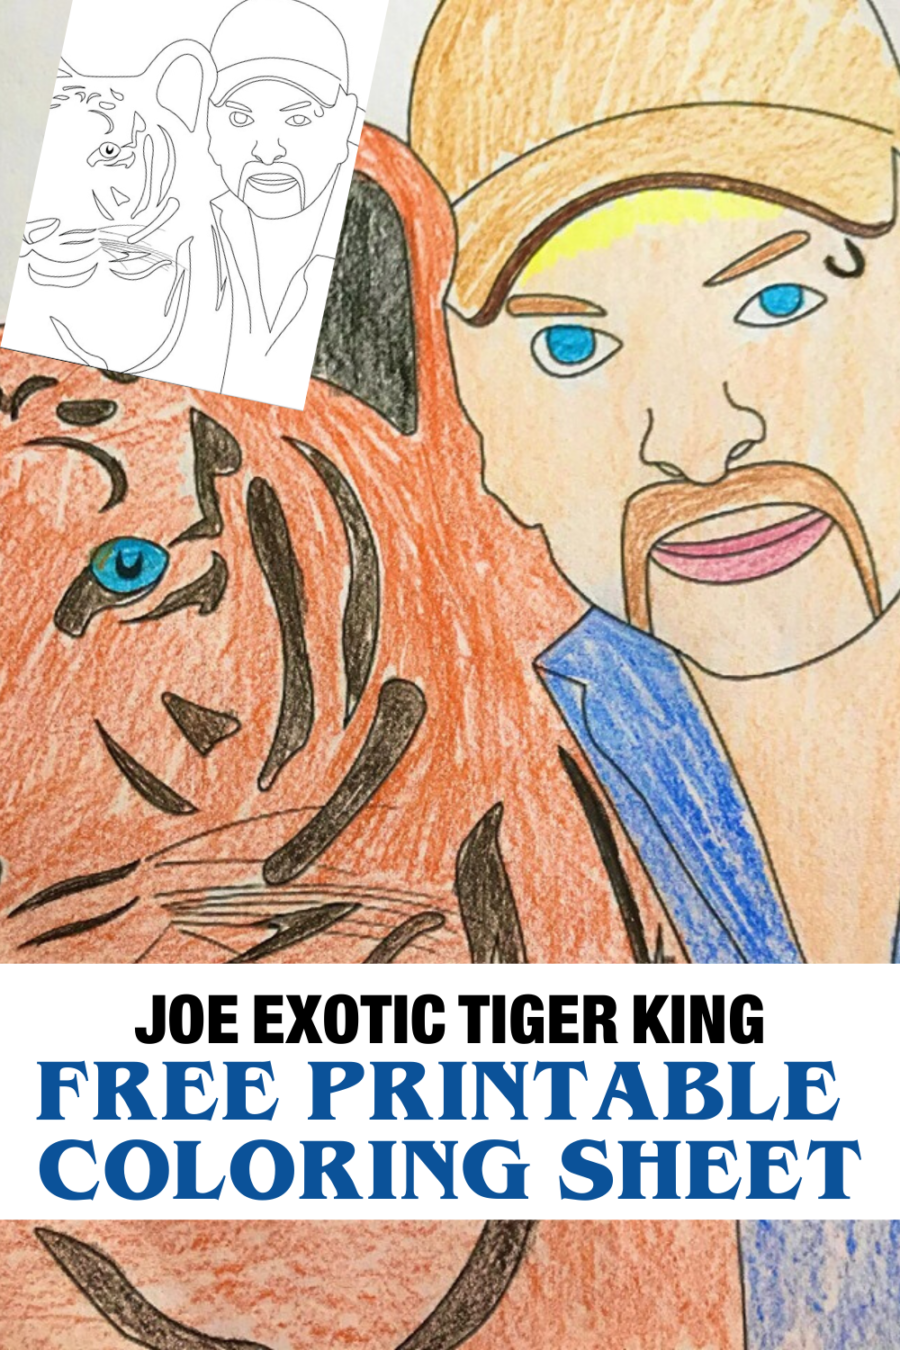 Free Netflix Tiger King Coloring Pages And Activities Birthday Coloring Pages Coloring Pages Free Printable Coloring Sheets